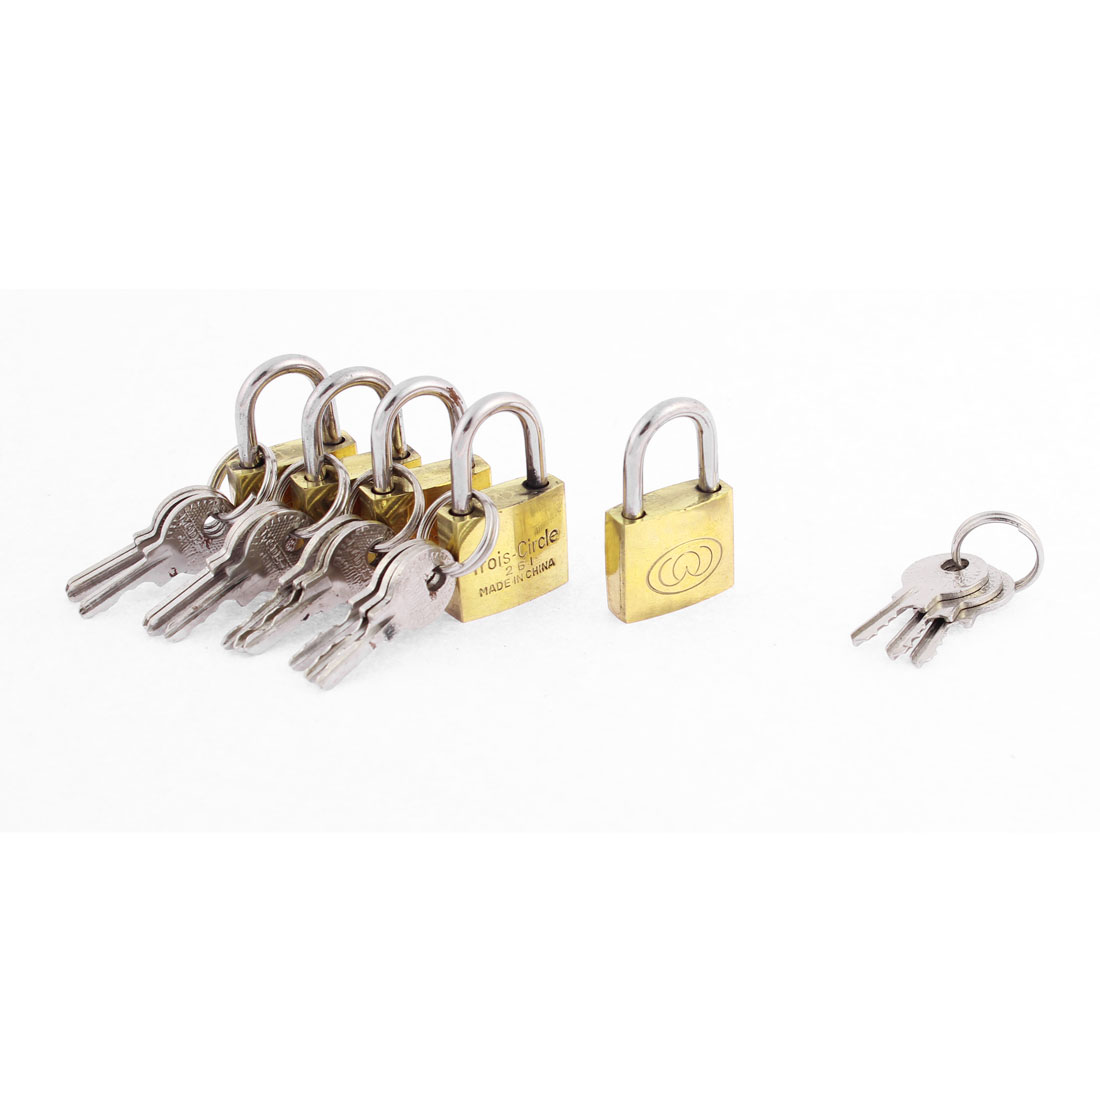 Cabinet Door Locking Security Padlock Brass Tone 5pcs w Keys